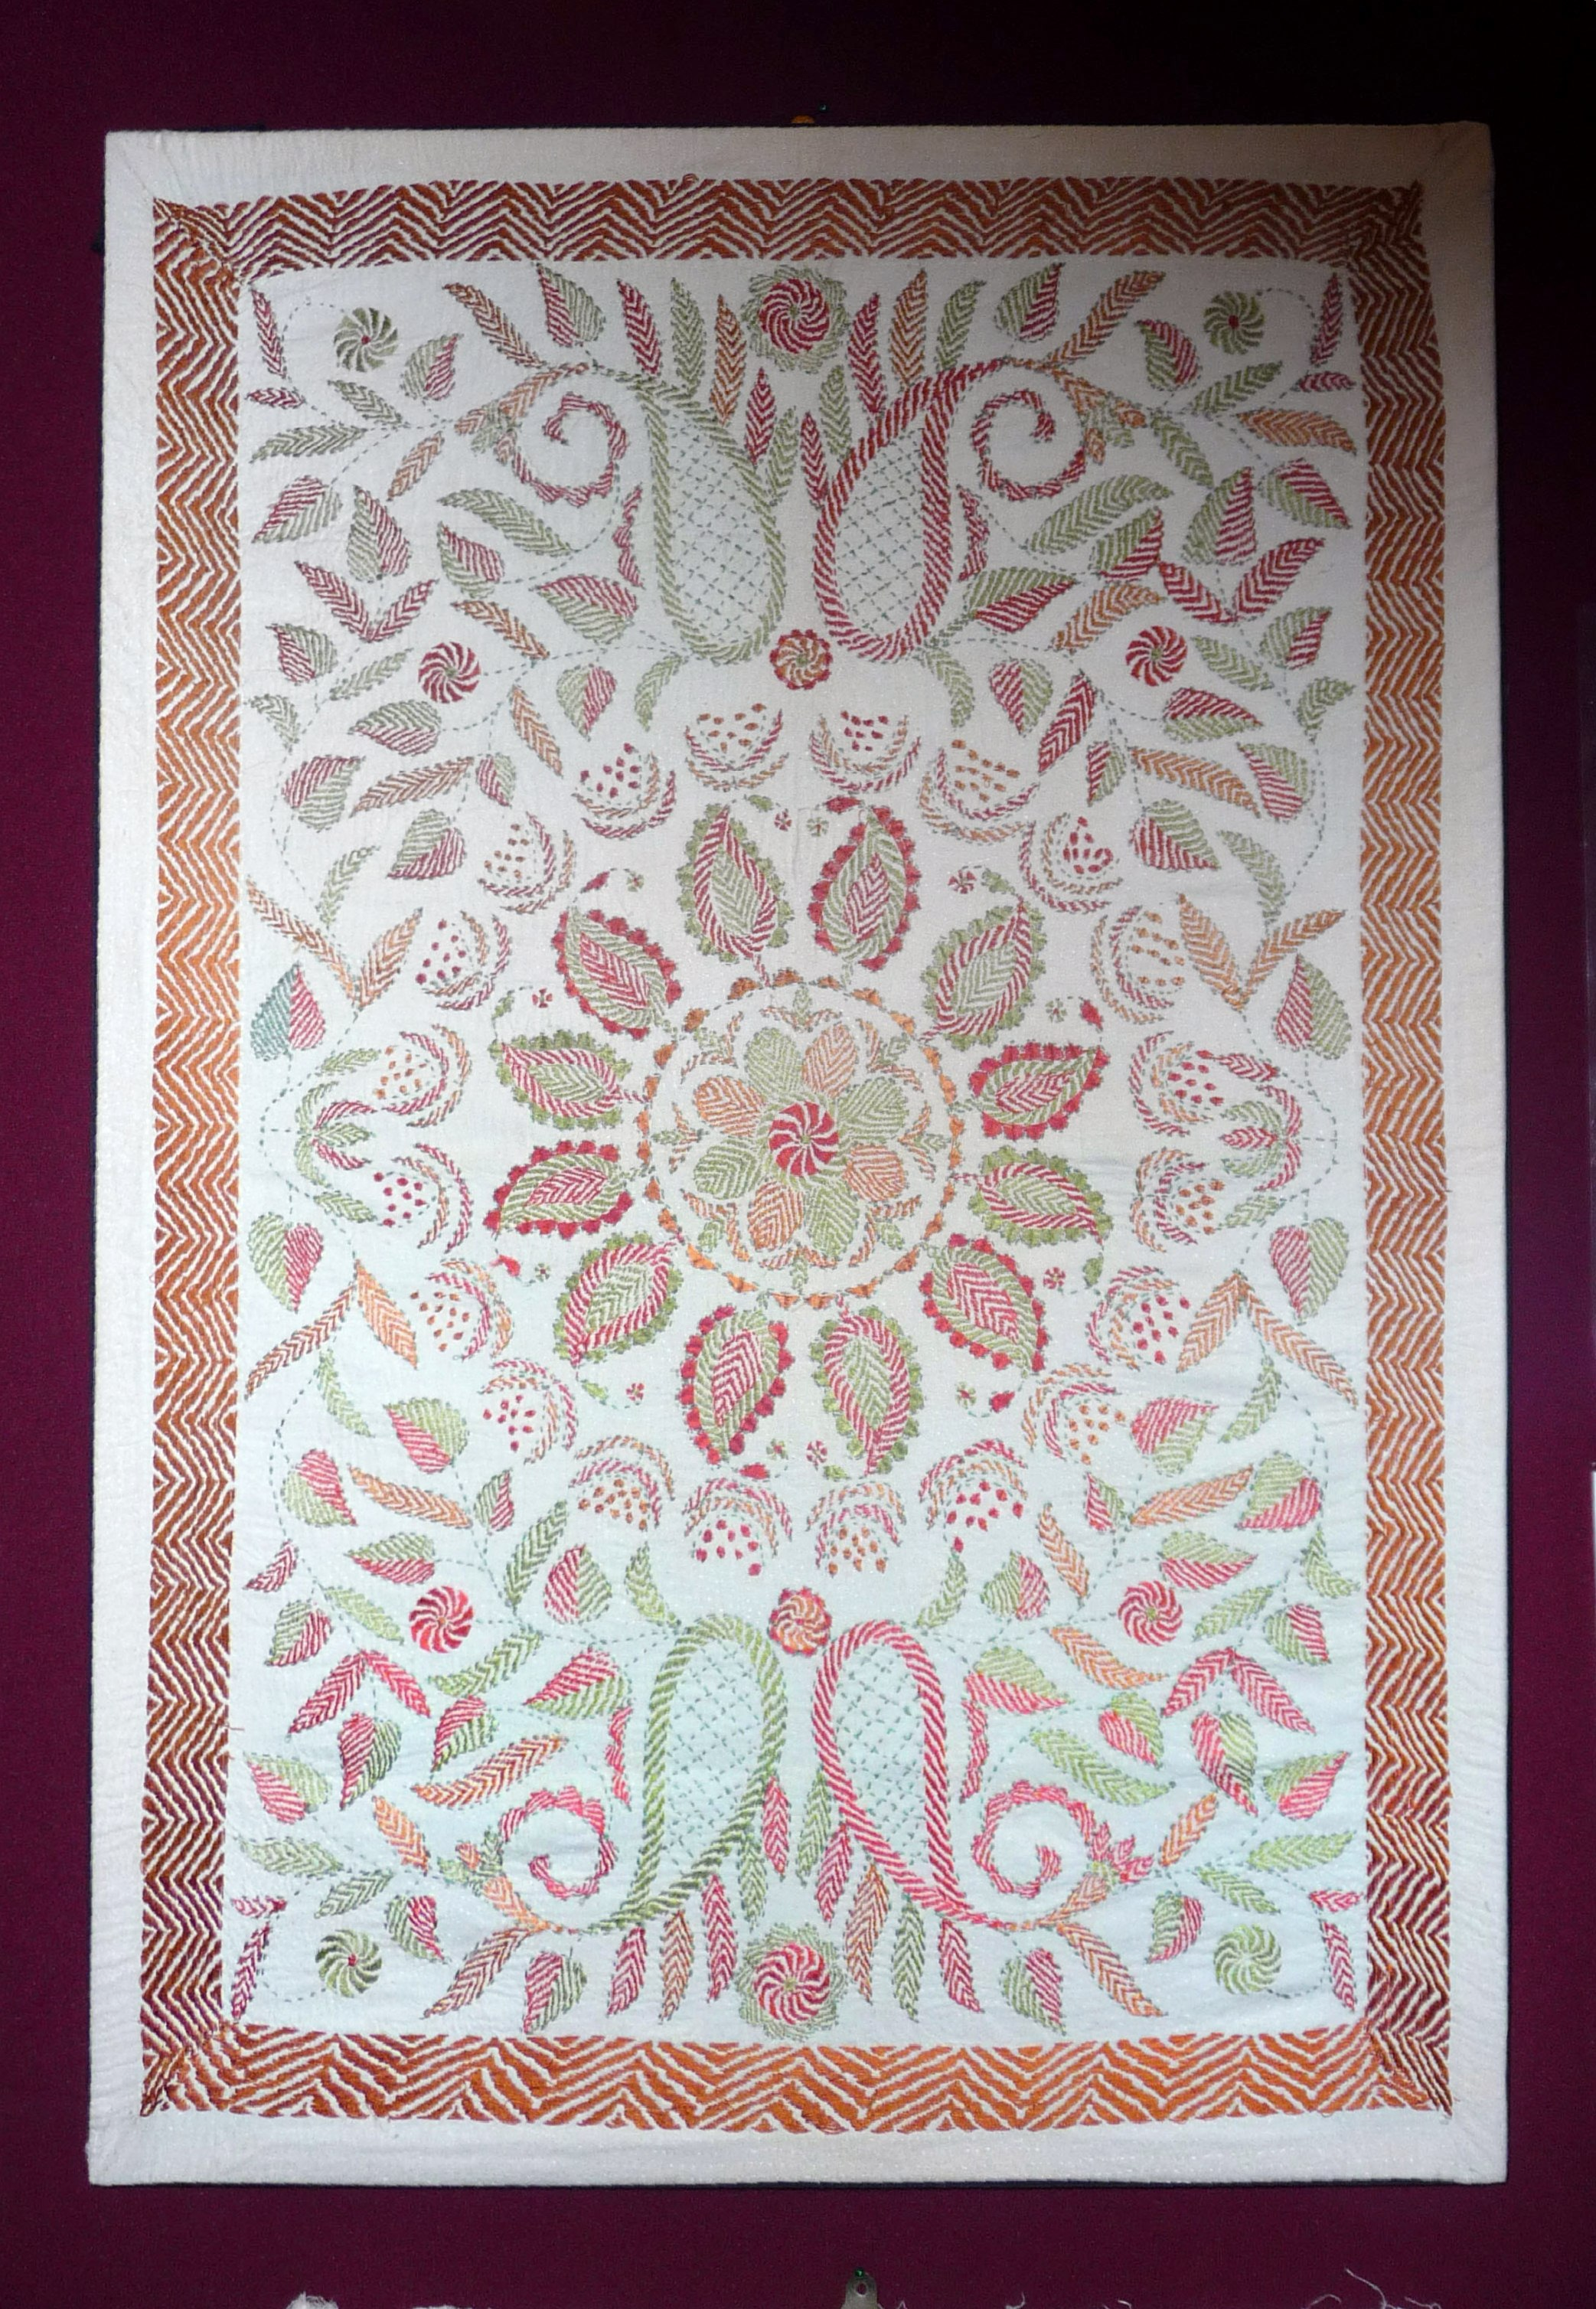 """embroidery from Sreepur """"Threading Dreams"""" exhibition, March 2015"""